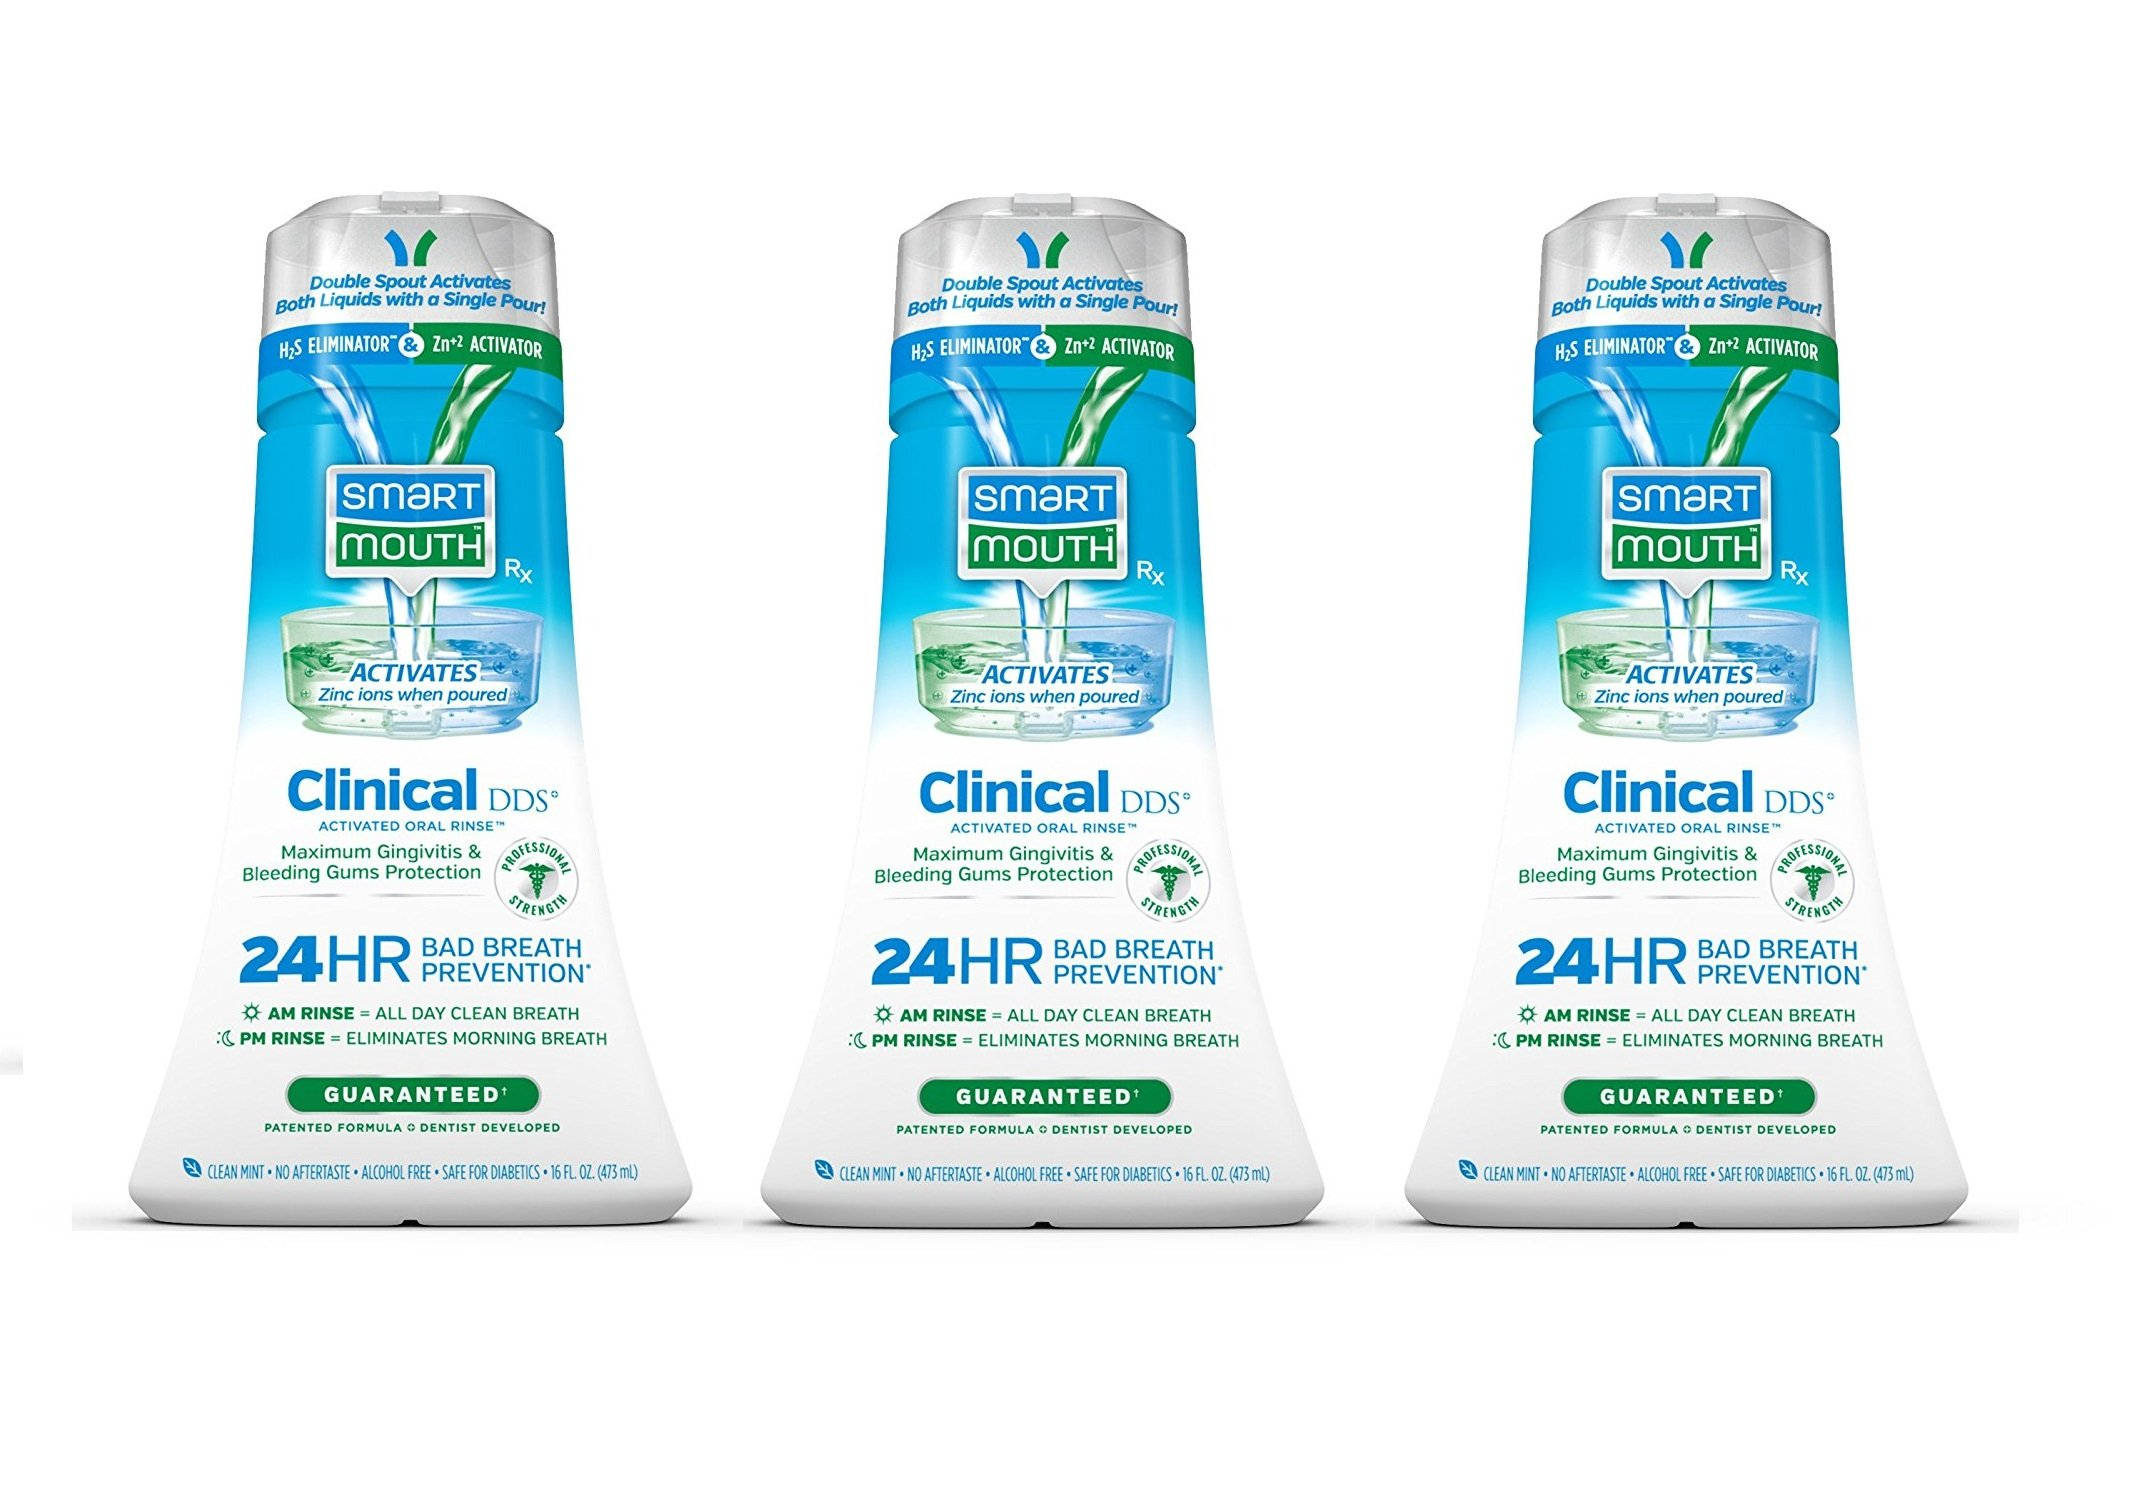 SmartMouth Clinical DDS Oral Rinse for the Treatment of Bad Breath and Protection From Gingivitis and Gum Disease, 16 ounce, 3 pack